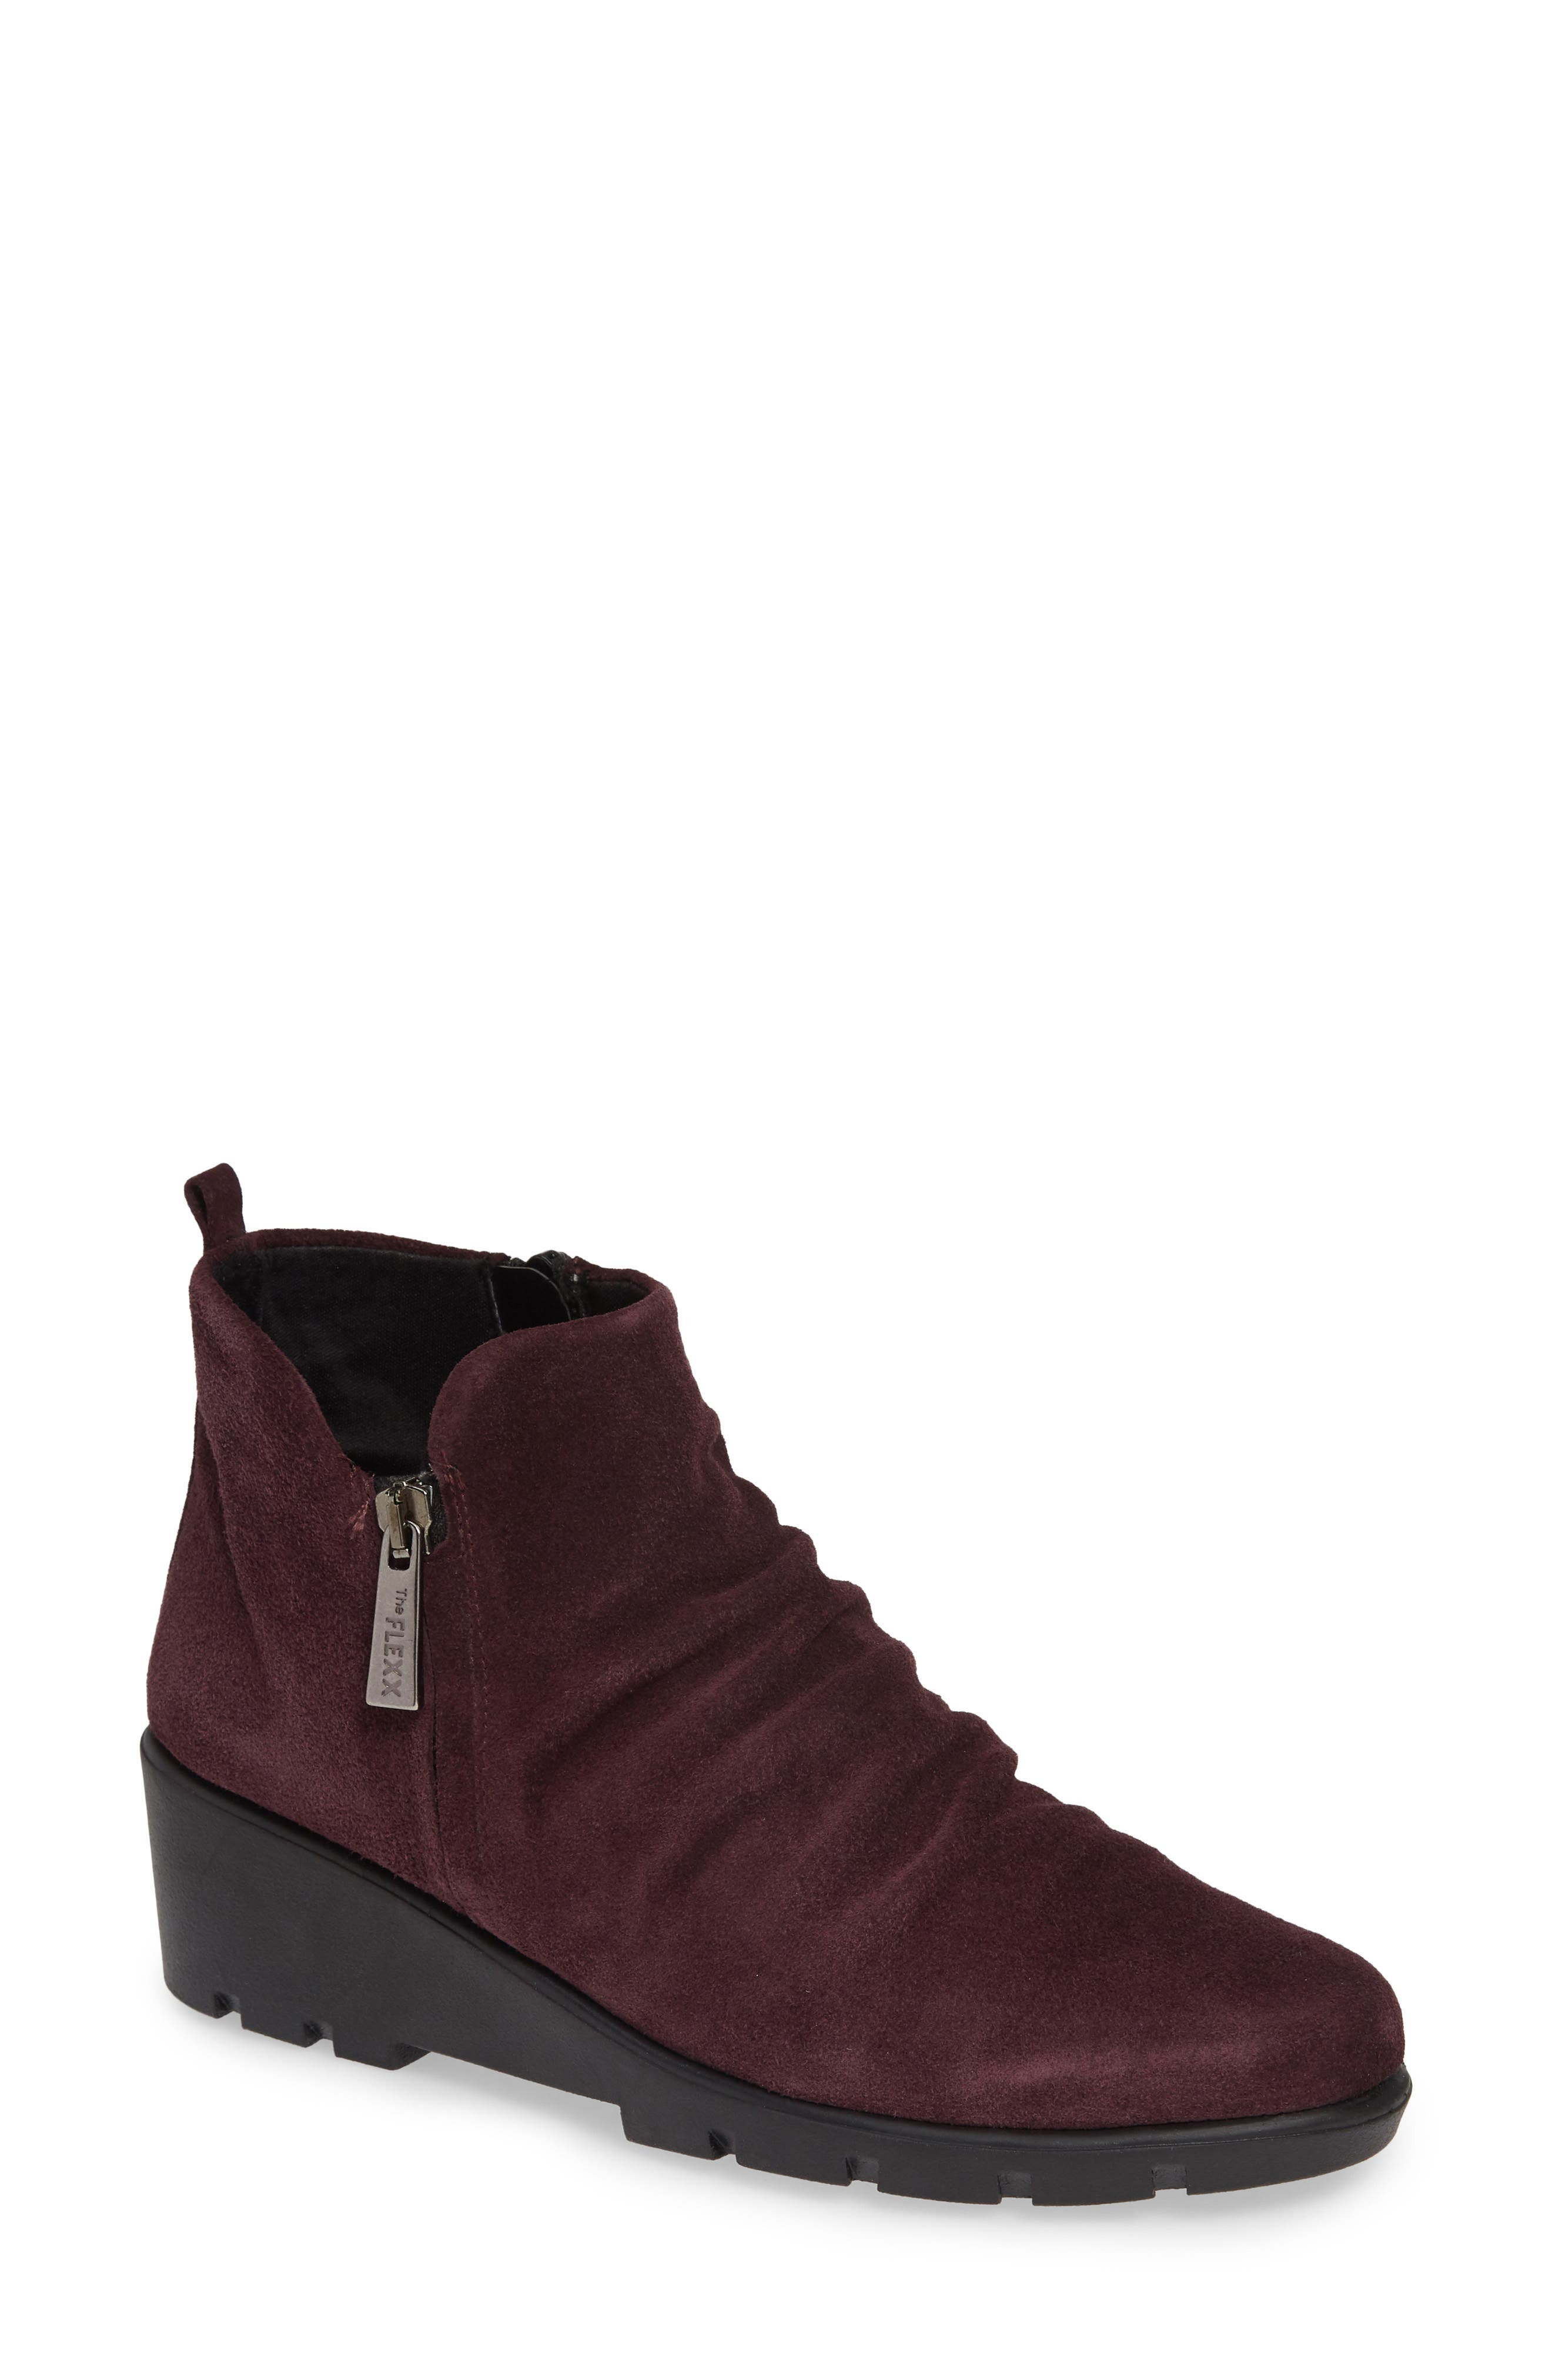 The Flexx Slingshot Ankle Bootie- Burgundy